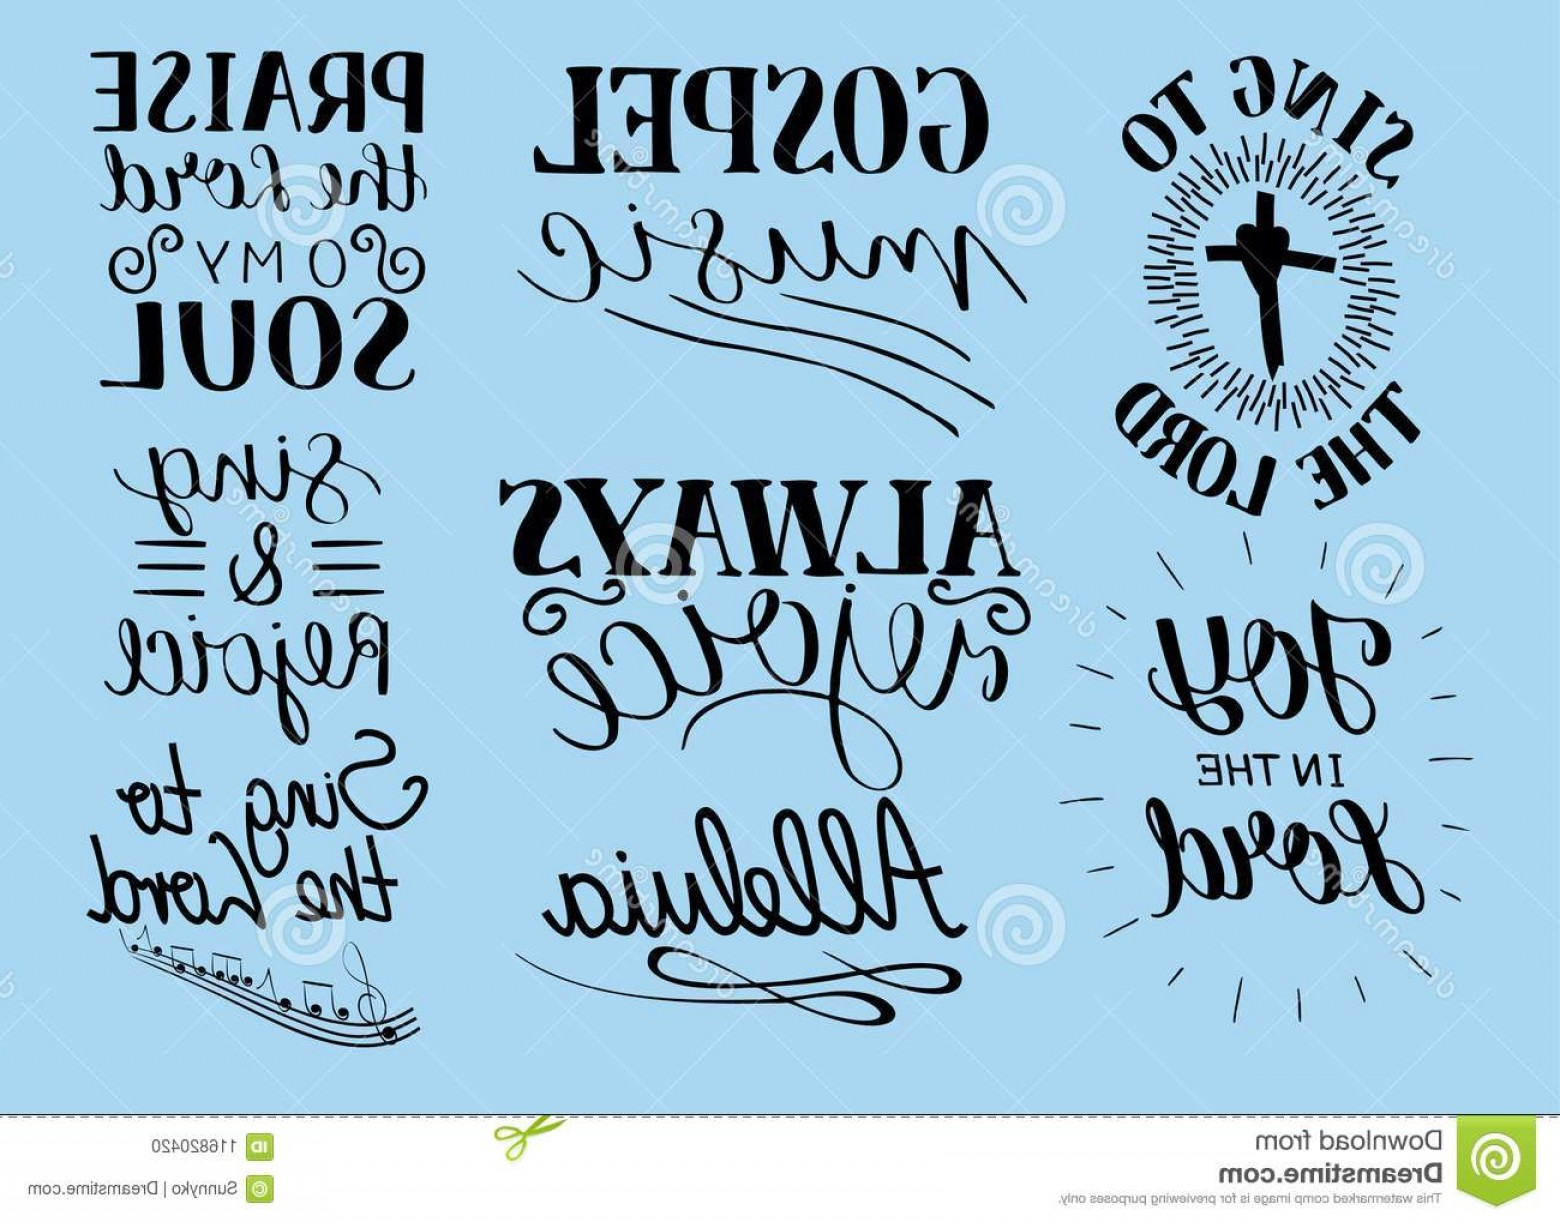 Gospel Music Background Vector: Set Hand Lettering Christian Quotes Sing To Lord Alleluia Rejoice Praise O My Soul Gospel Music Worship Collection Image